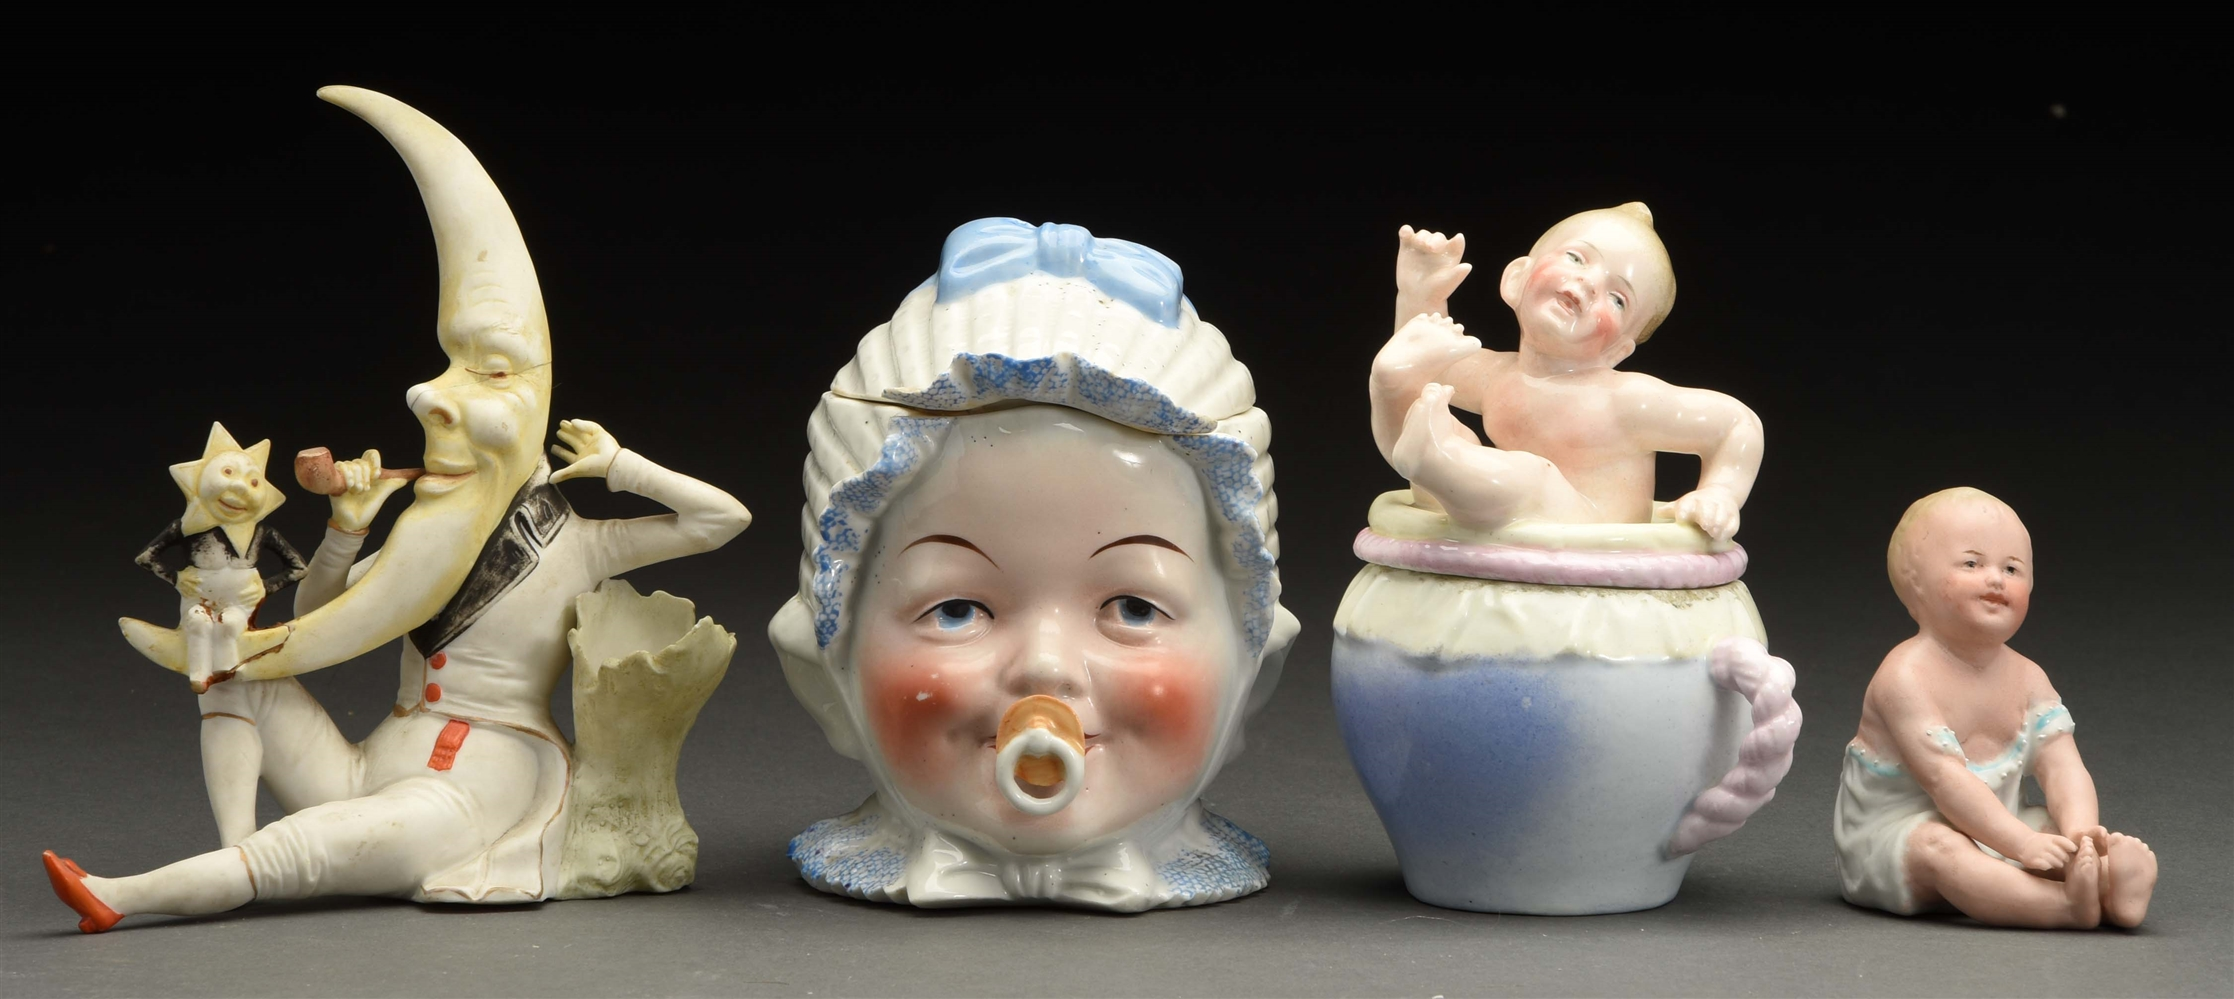 Lot of 4: Bisque & Porcelain Figures.